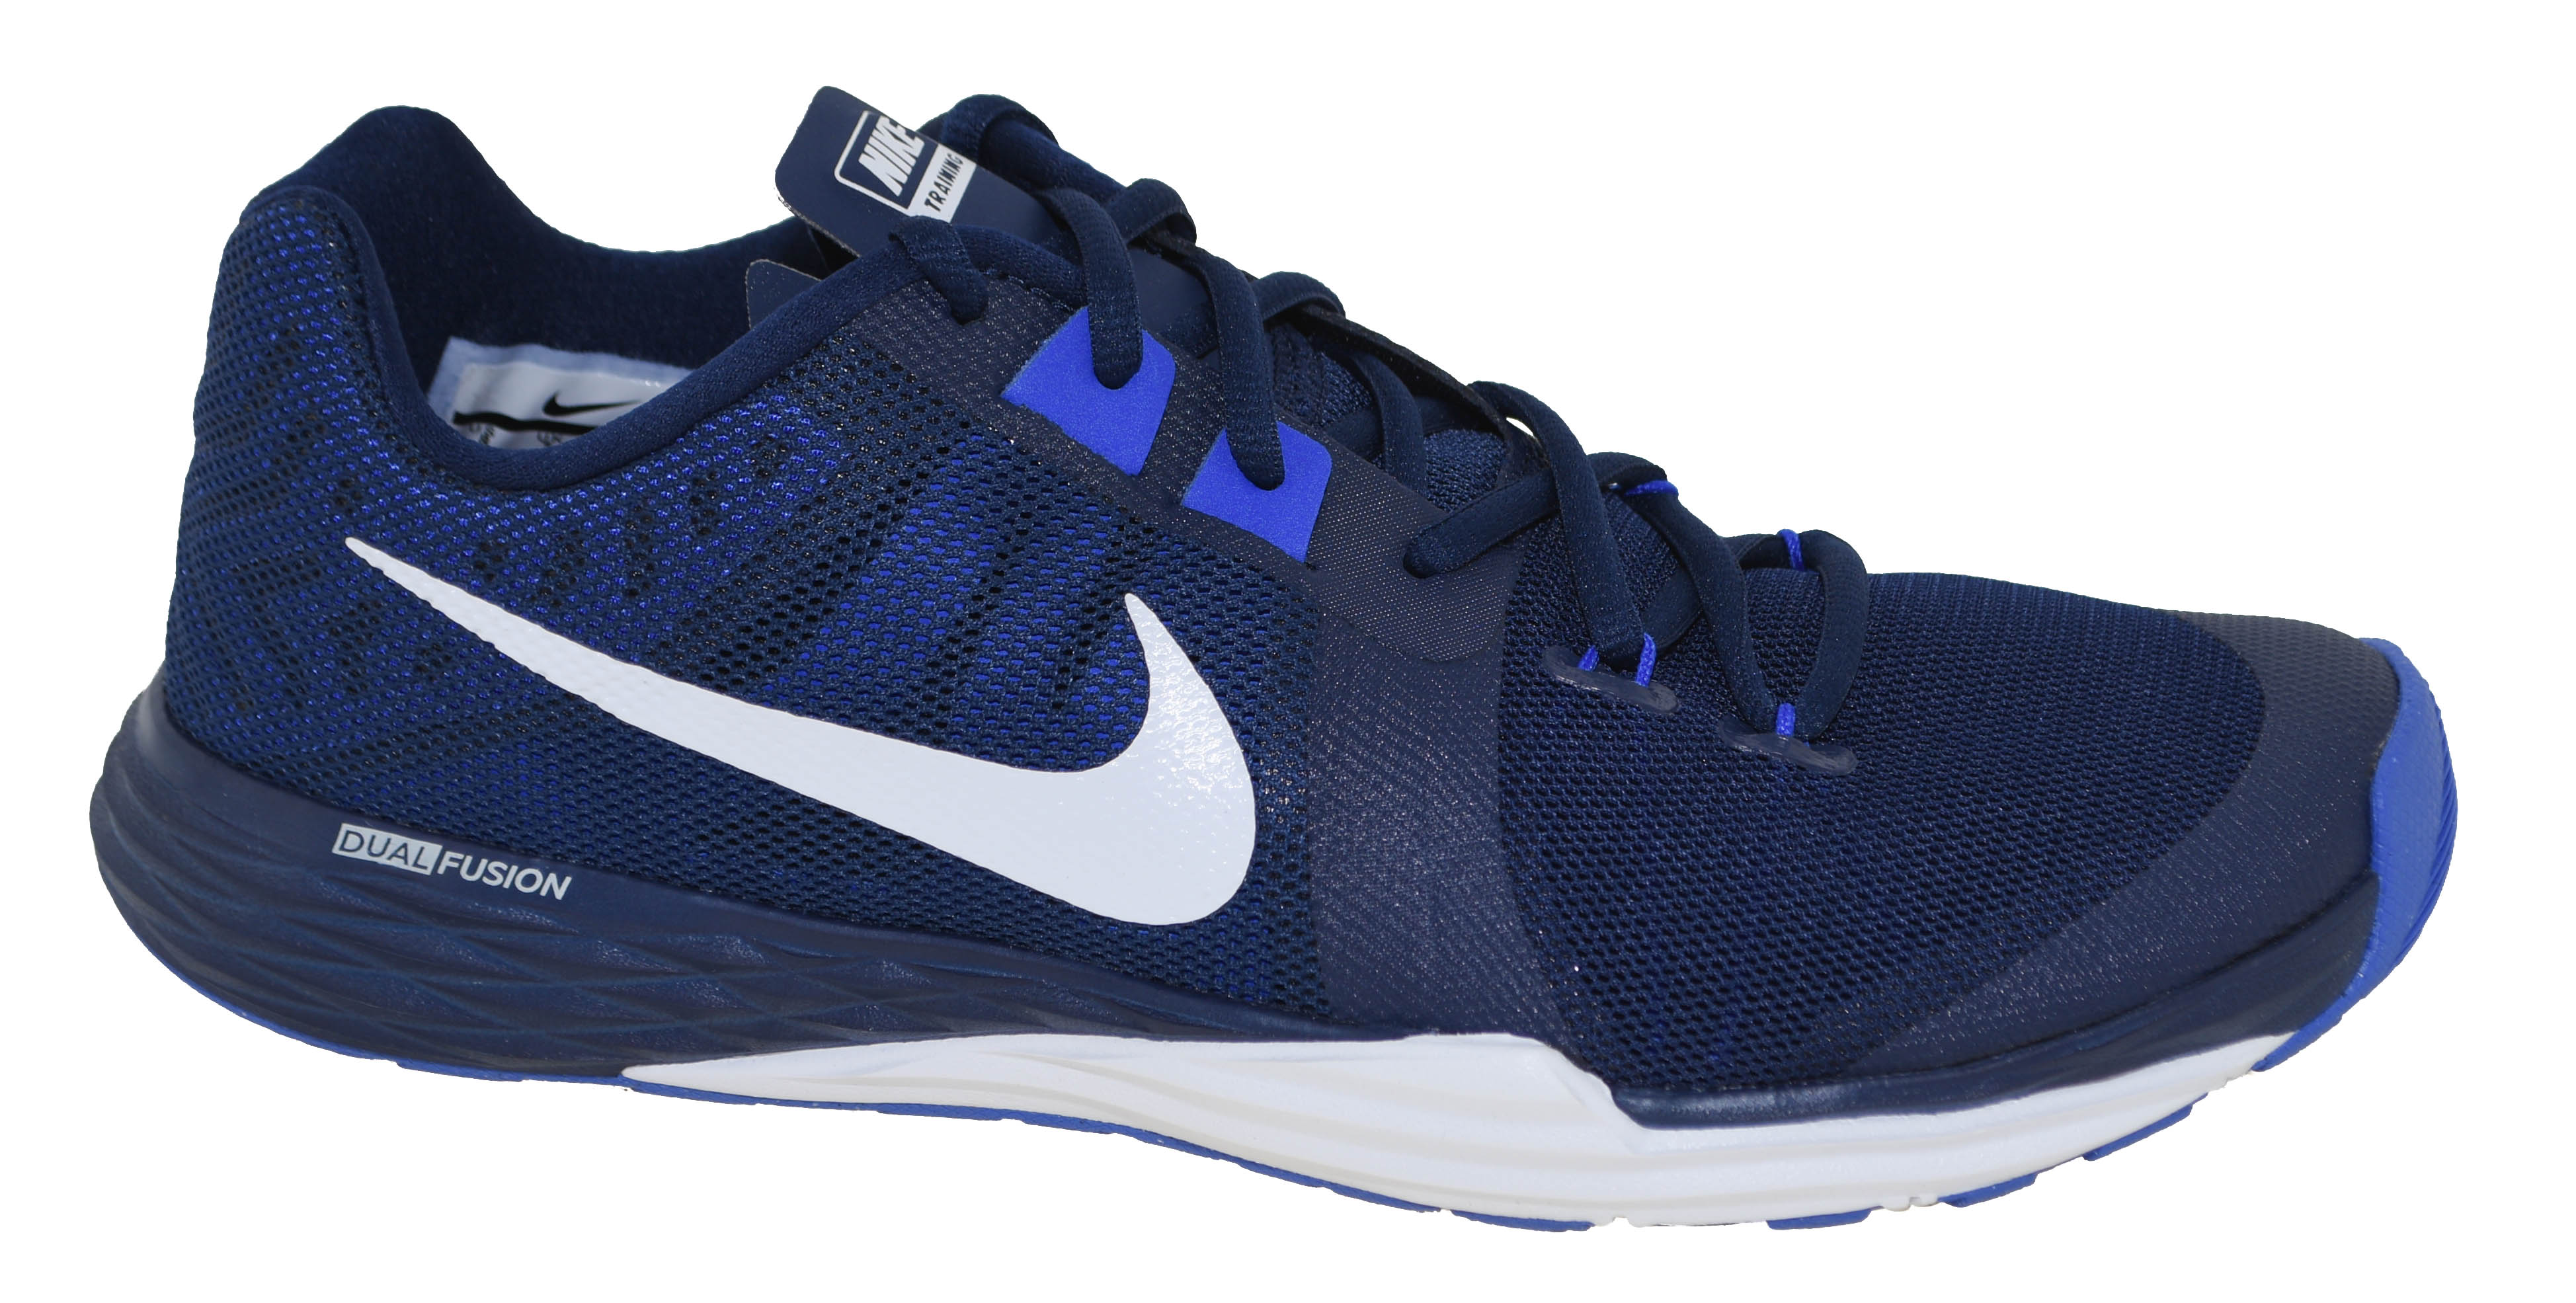 super popular 0a2af 7e5f0 Nike Men s Train Prime Iron DF Athletic Sneakers Style 832219-404